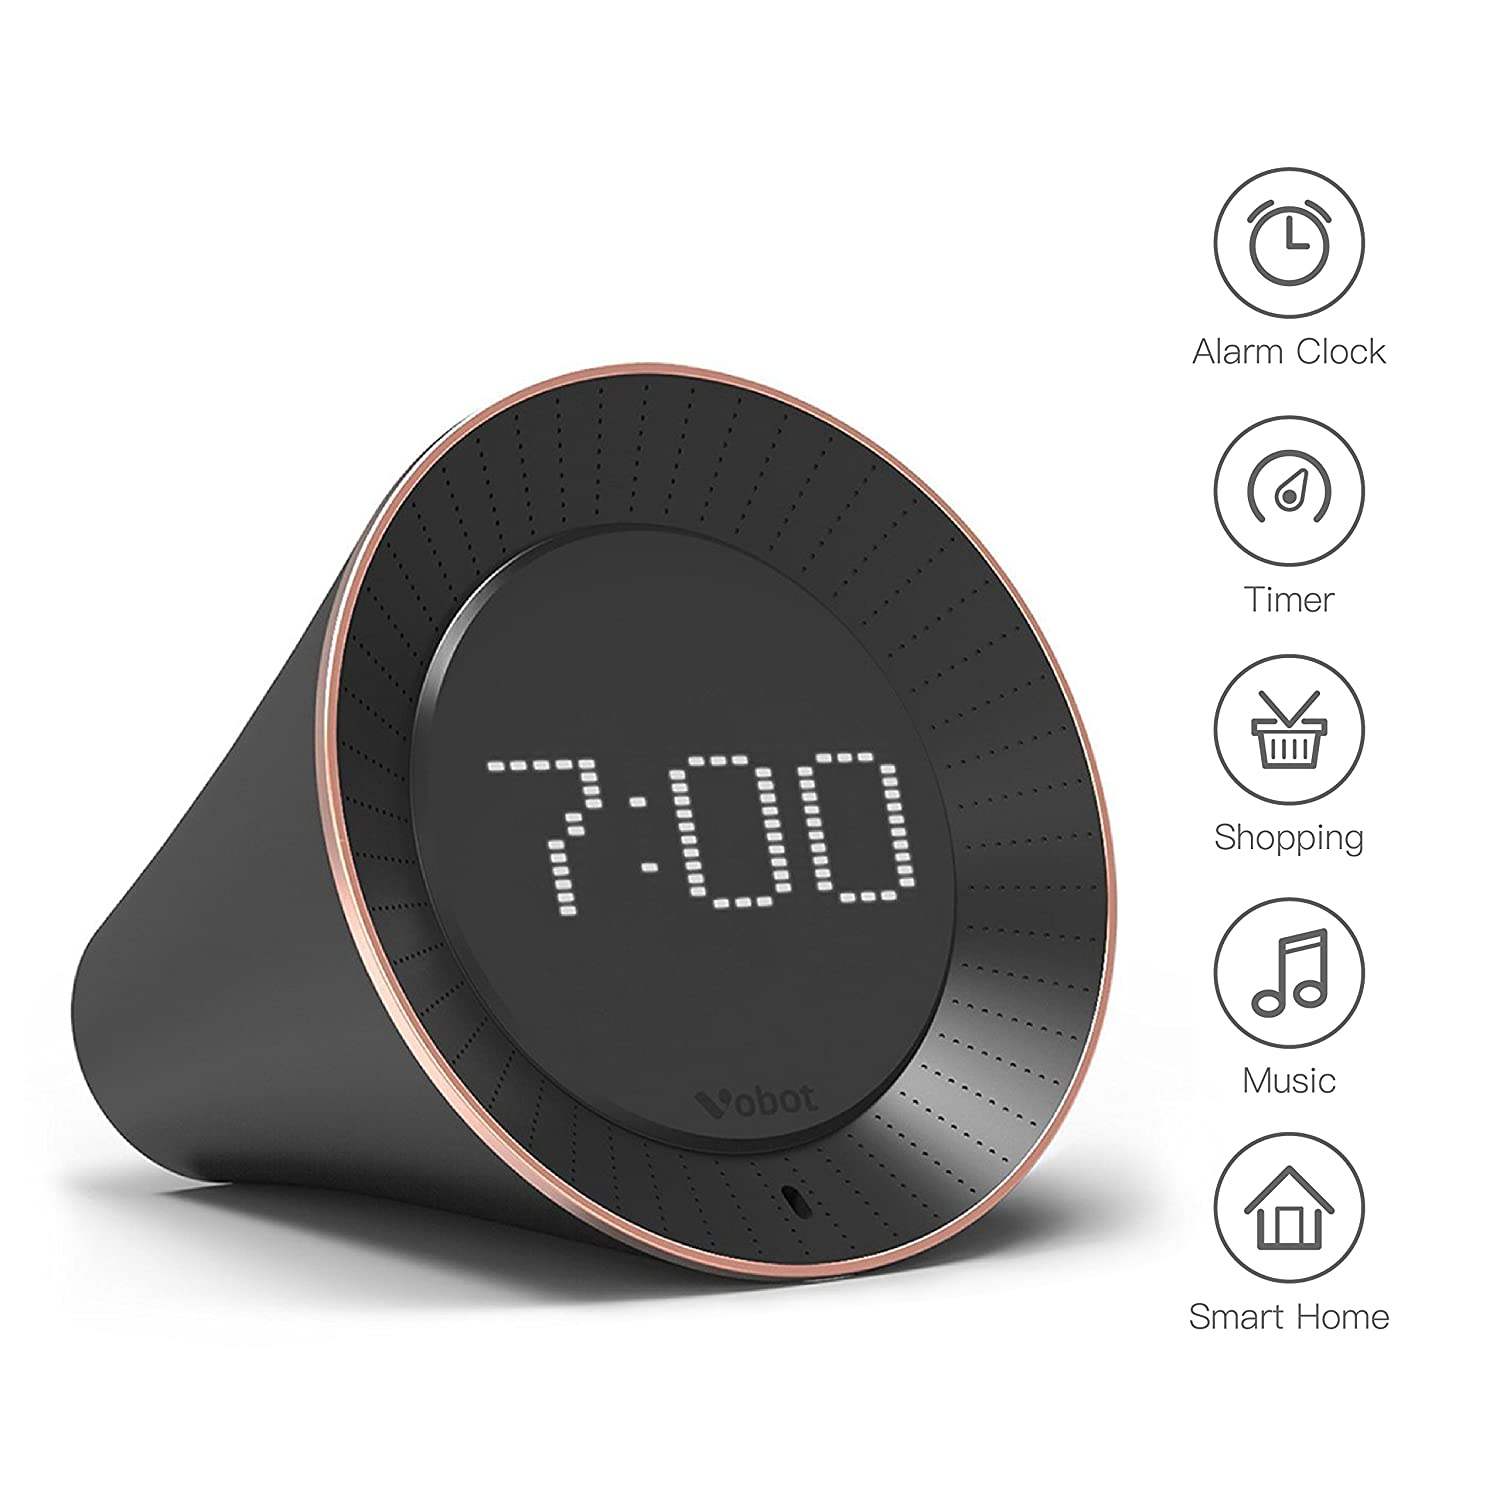 Smart Alarm Clock >> Vobot Smart Alarm Clock With Amazon Alexa Amazon In Electronics